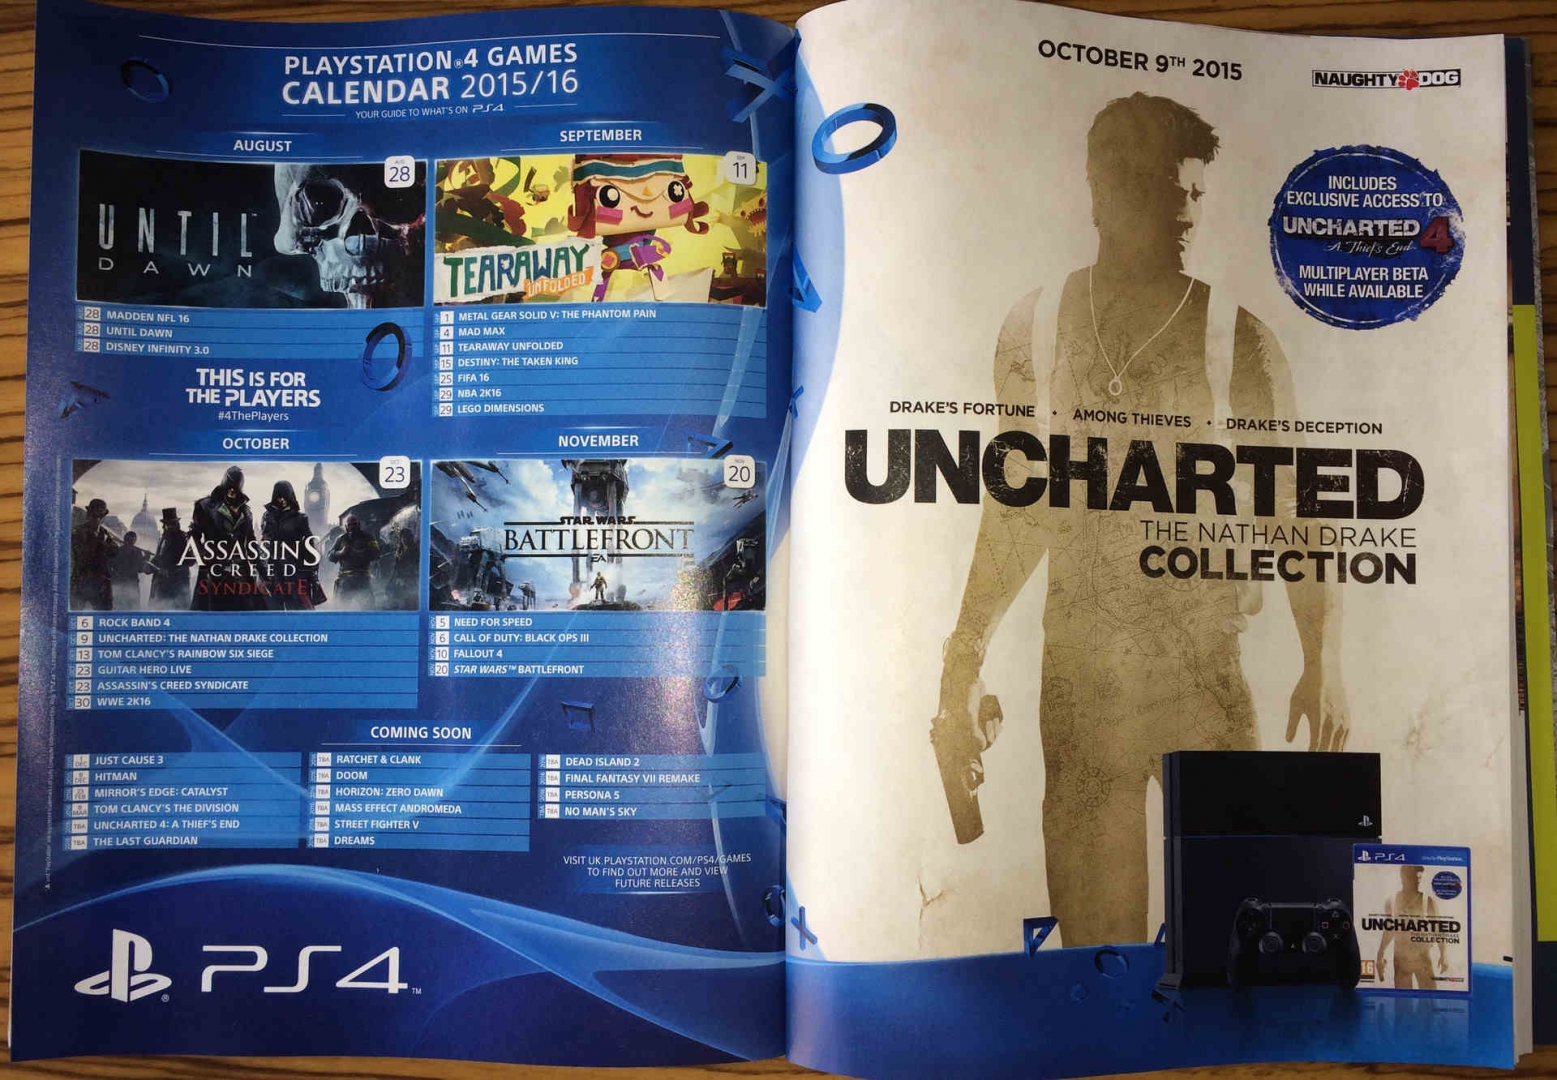 Ps4 games release dates